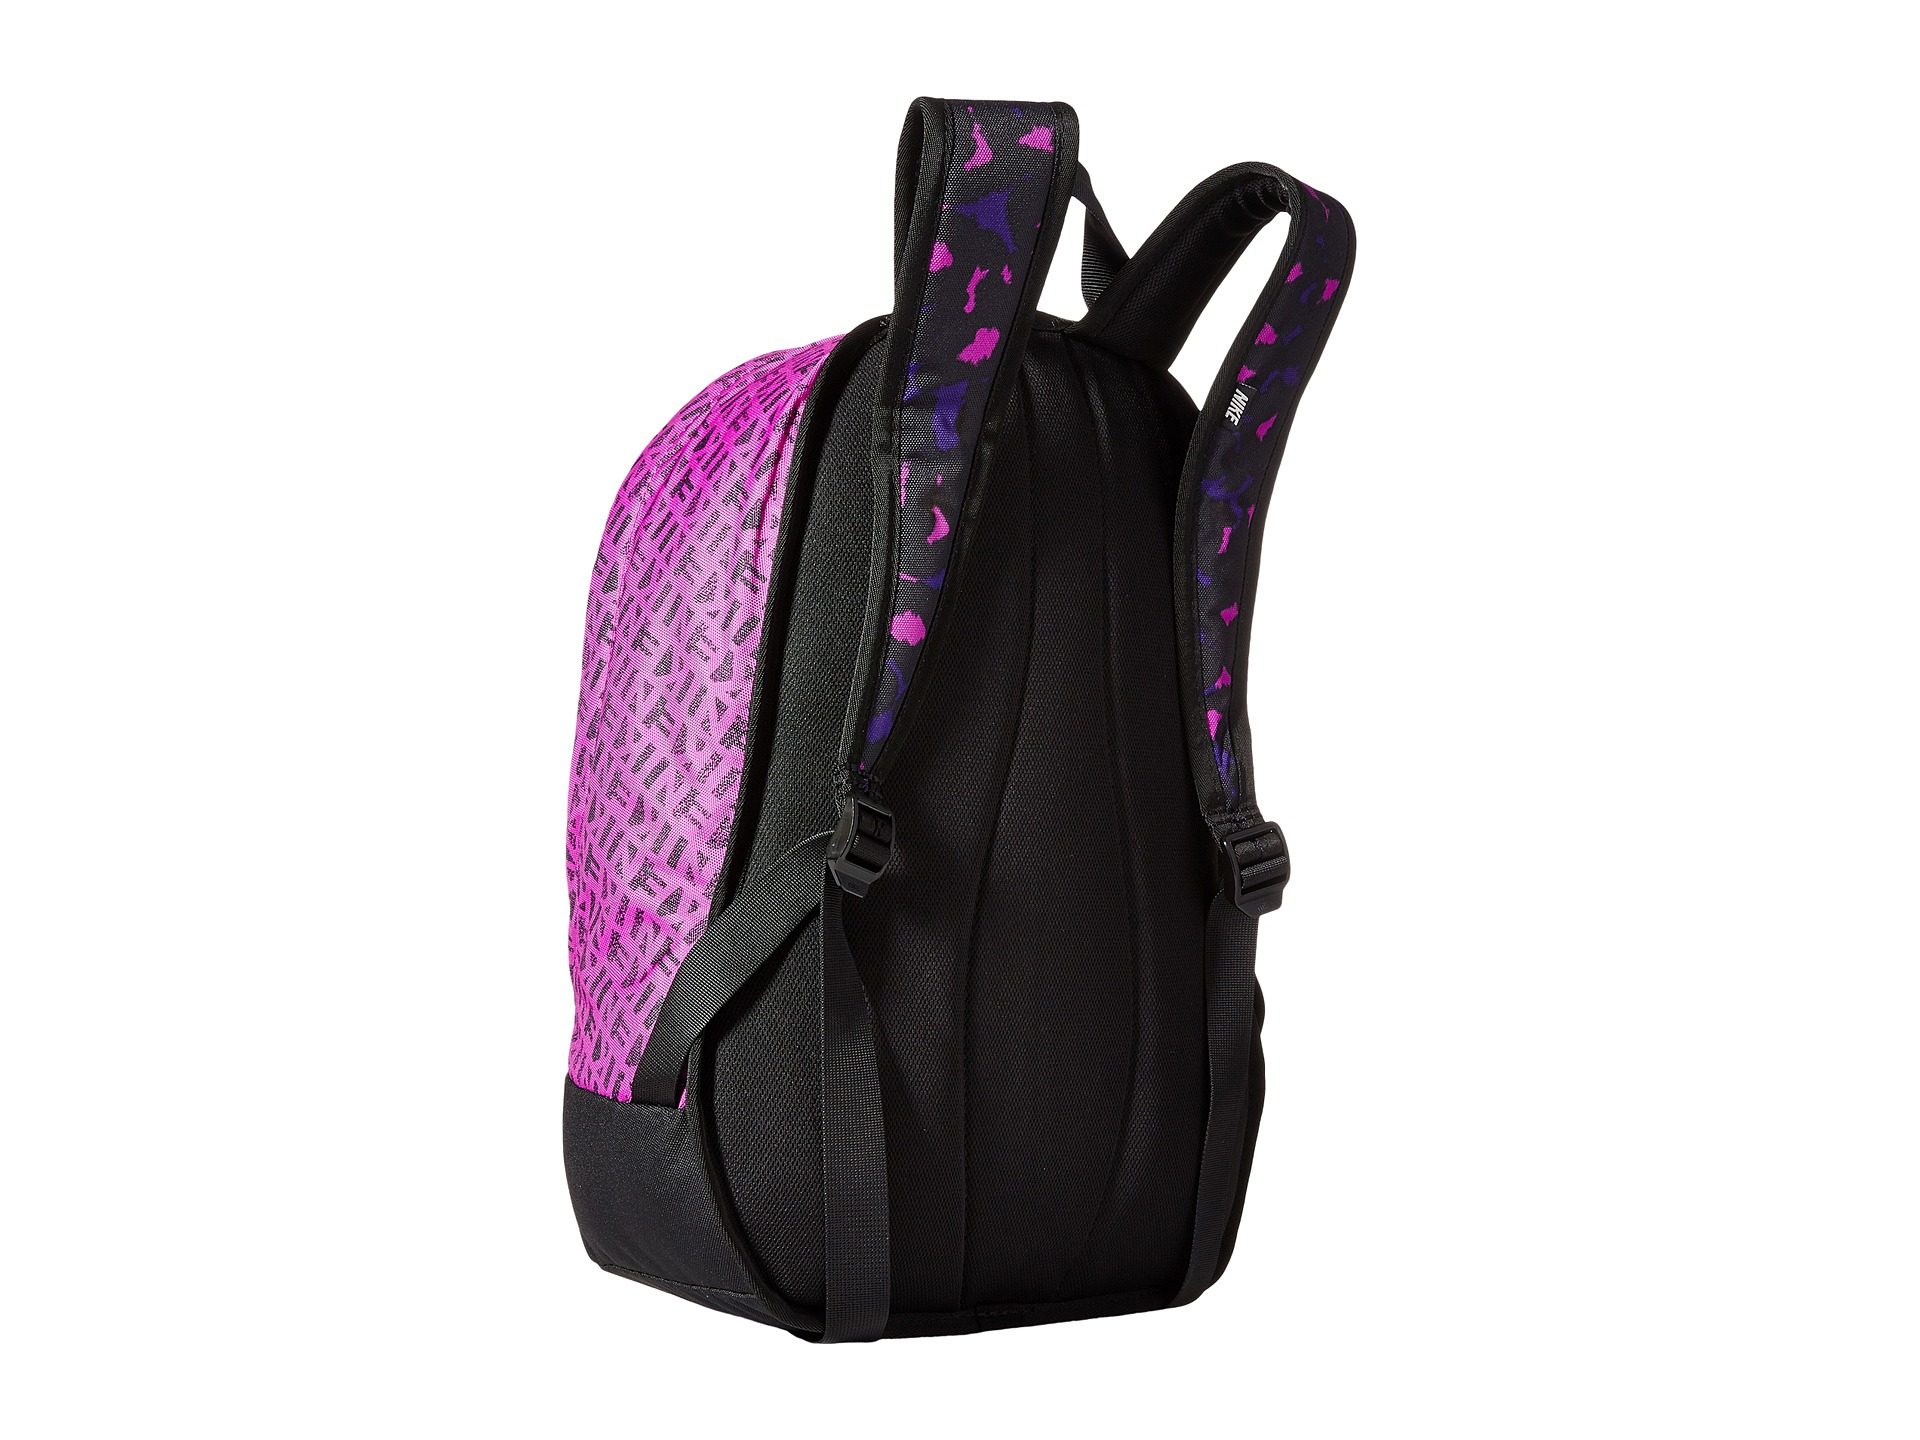 Nike Young Athletes Cheyenne Backpack In Purple - Lyst-2088